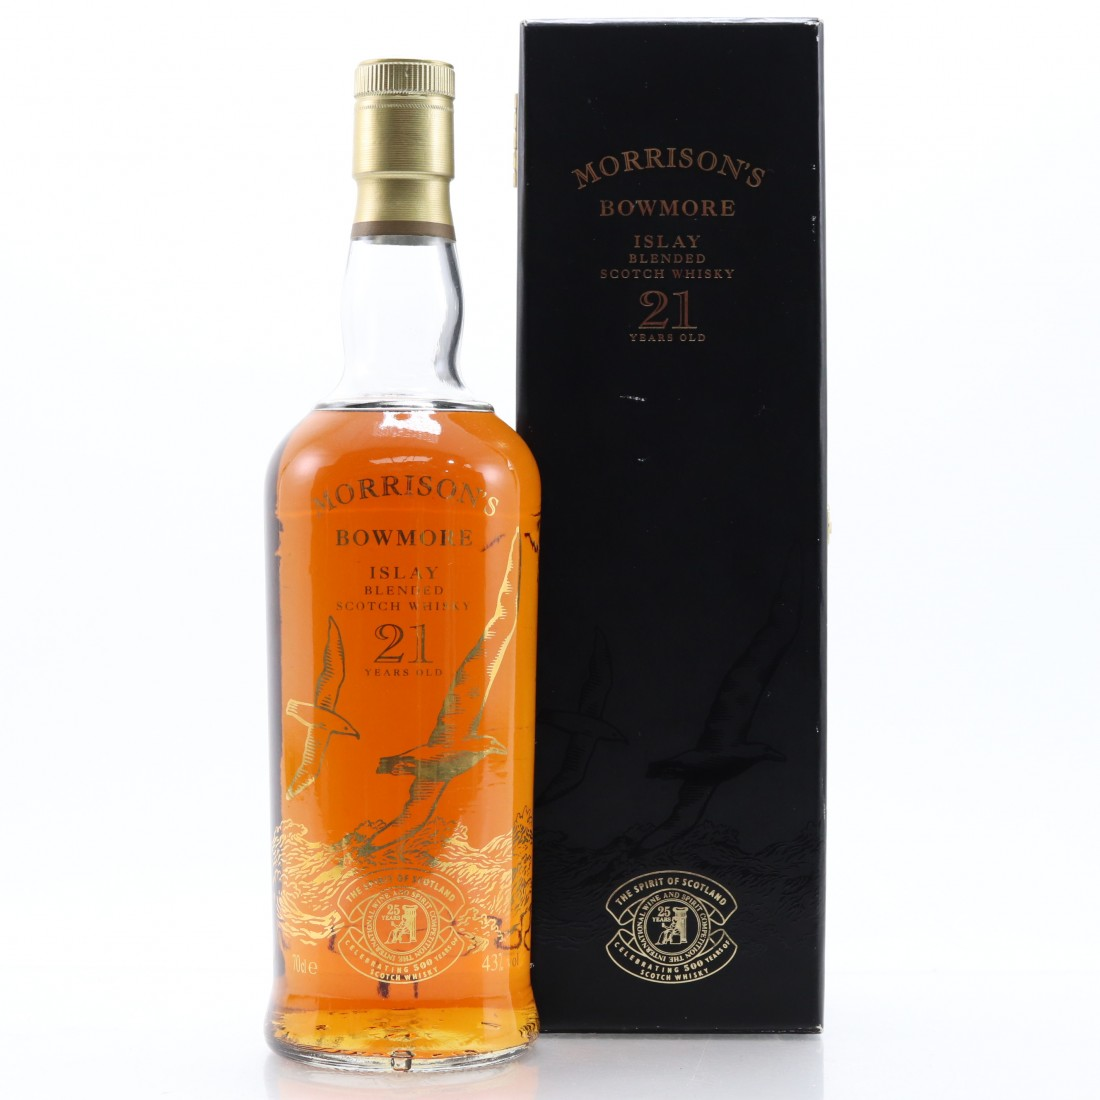 Morrison's Bowmore 21 Year Old 500th Anniversary Blend